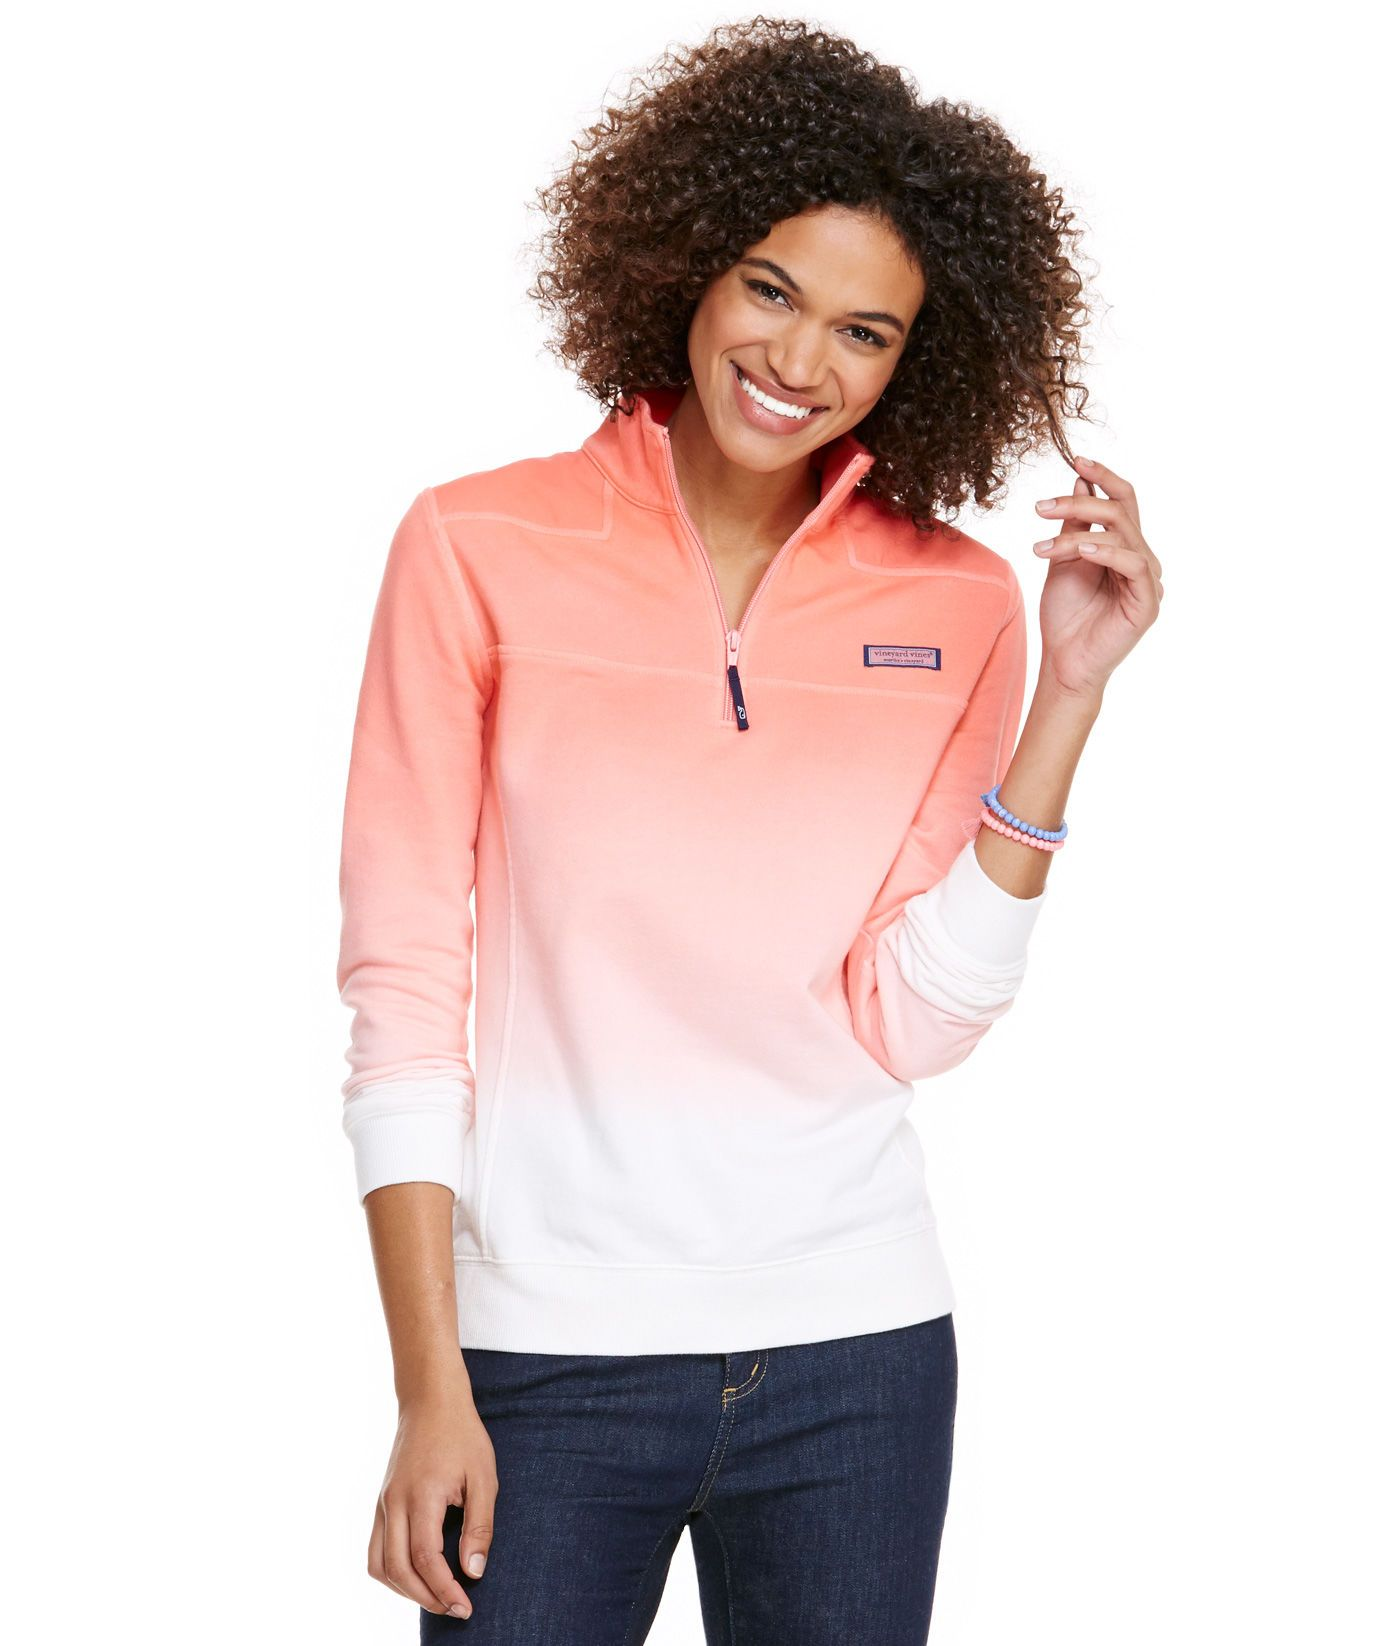 d9a02e3e356aa Shop Ombre Dyed Shep Shirt at vineyard vines